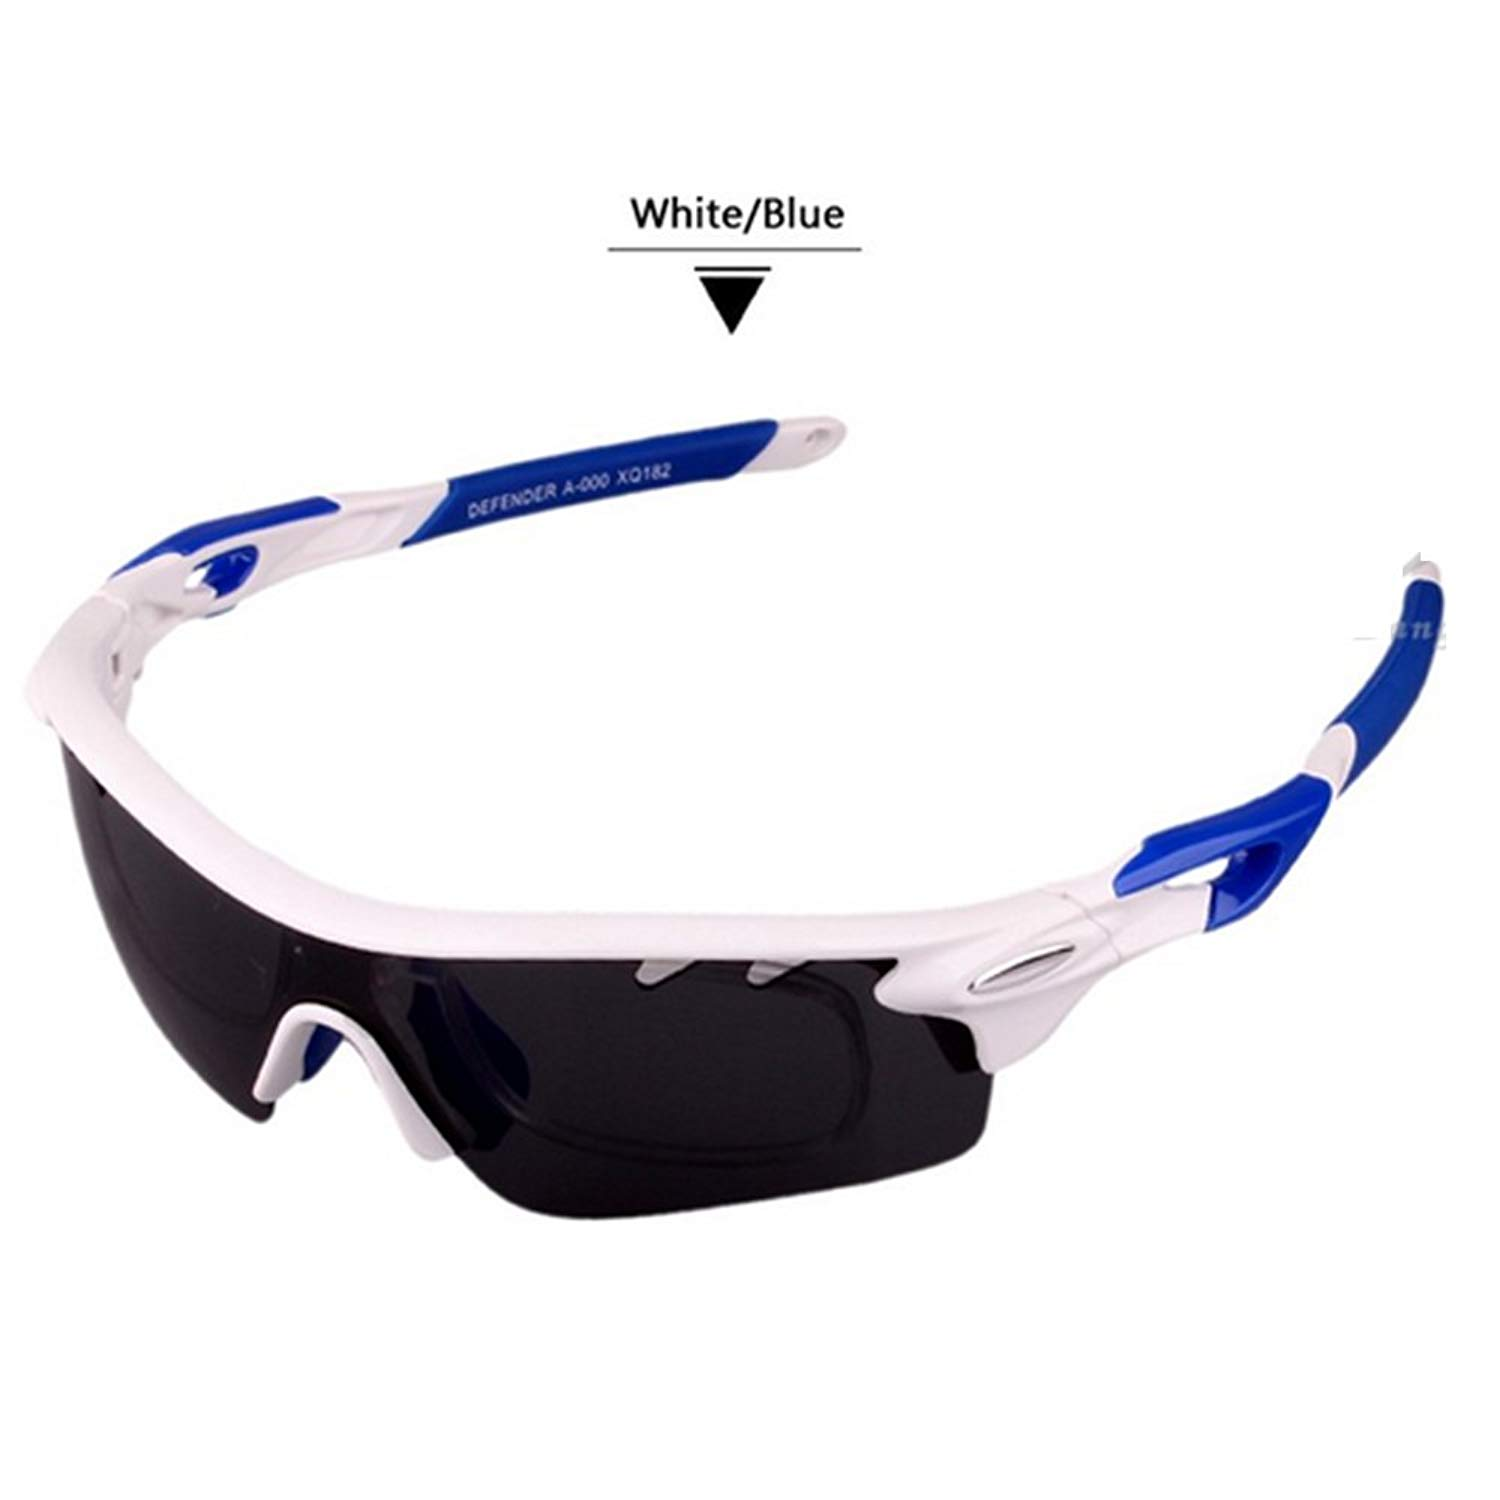 f4c9d068288 Get Quotations · Polarized Sports Men Sunglasses Road Cycling Glasses  Mountain Bike Bicycle Riding Protection Goggles Eyewear 3 Lens